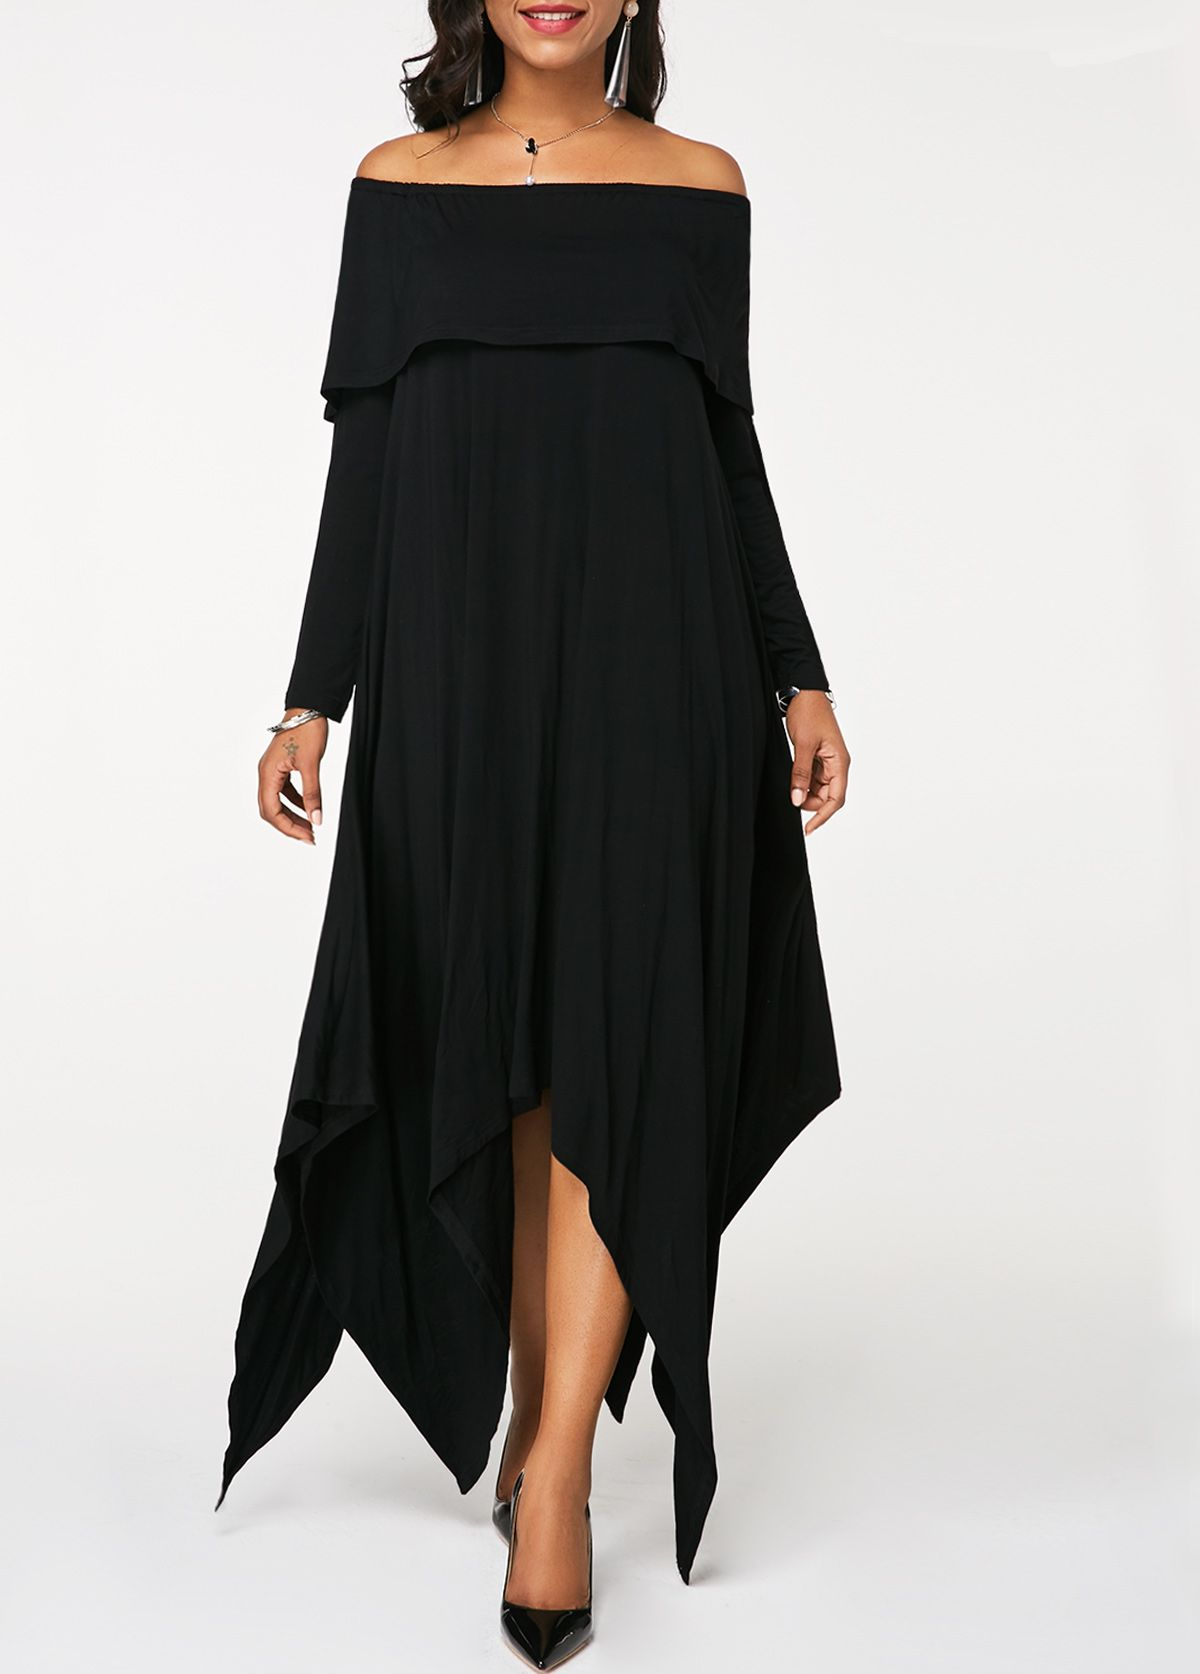 f43fb6e0eedc Asymmetric Hem Black Off the Shoulder Maxi Dress | Rosewe.com - USD $25.39